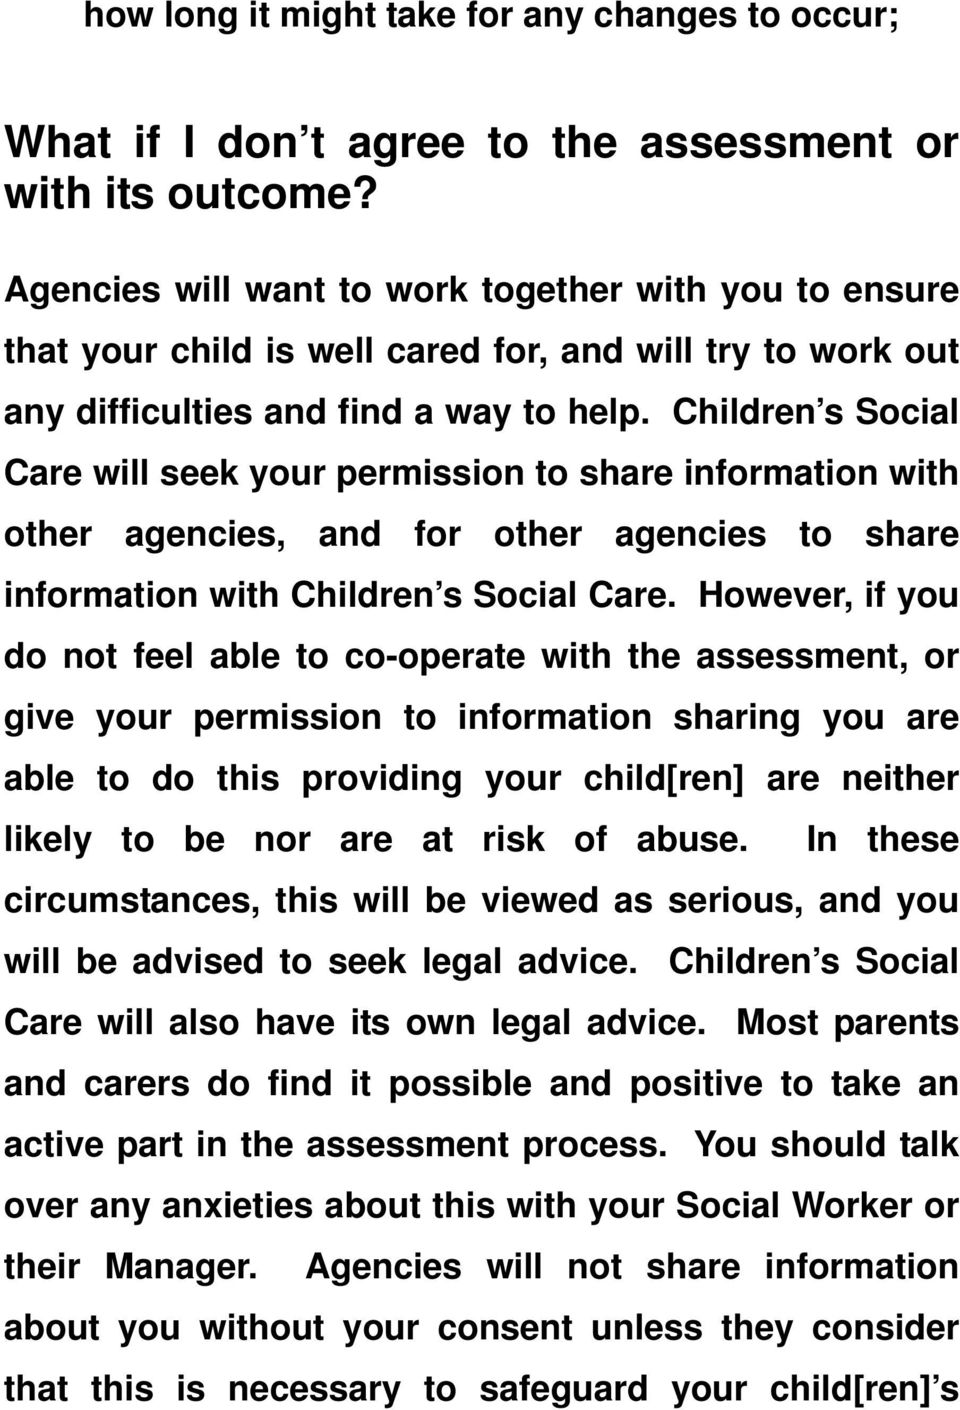 Children s Social Care will seek your permission to share information with other agencies, and for other agencies to share information with Children s Social Care.